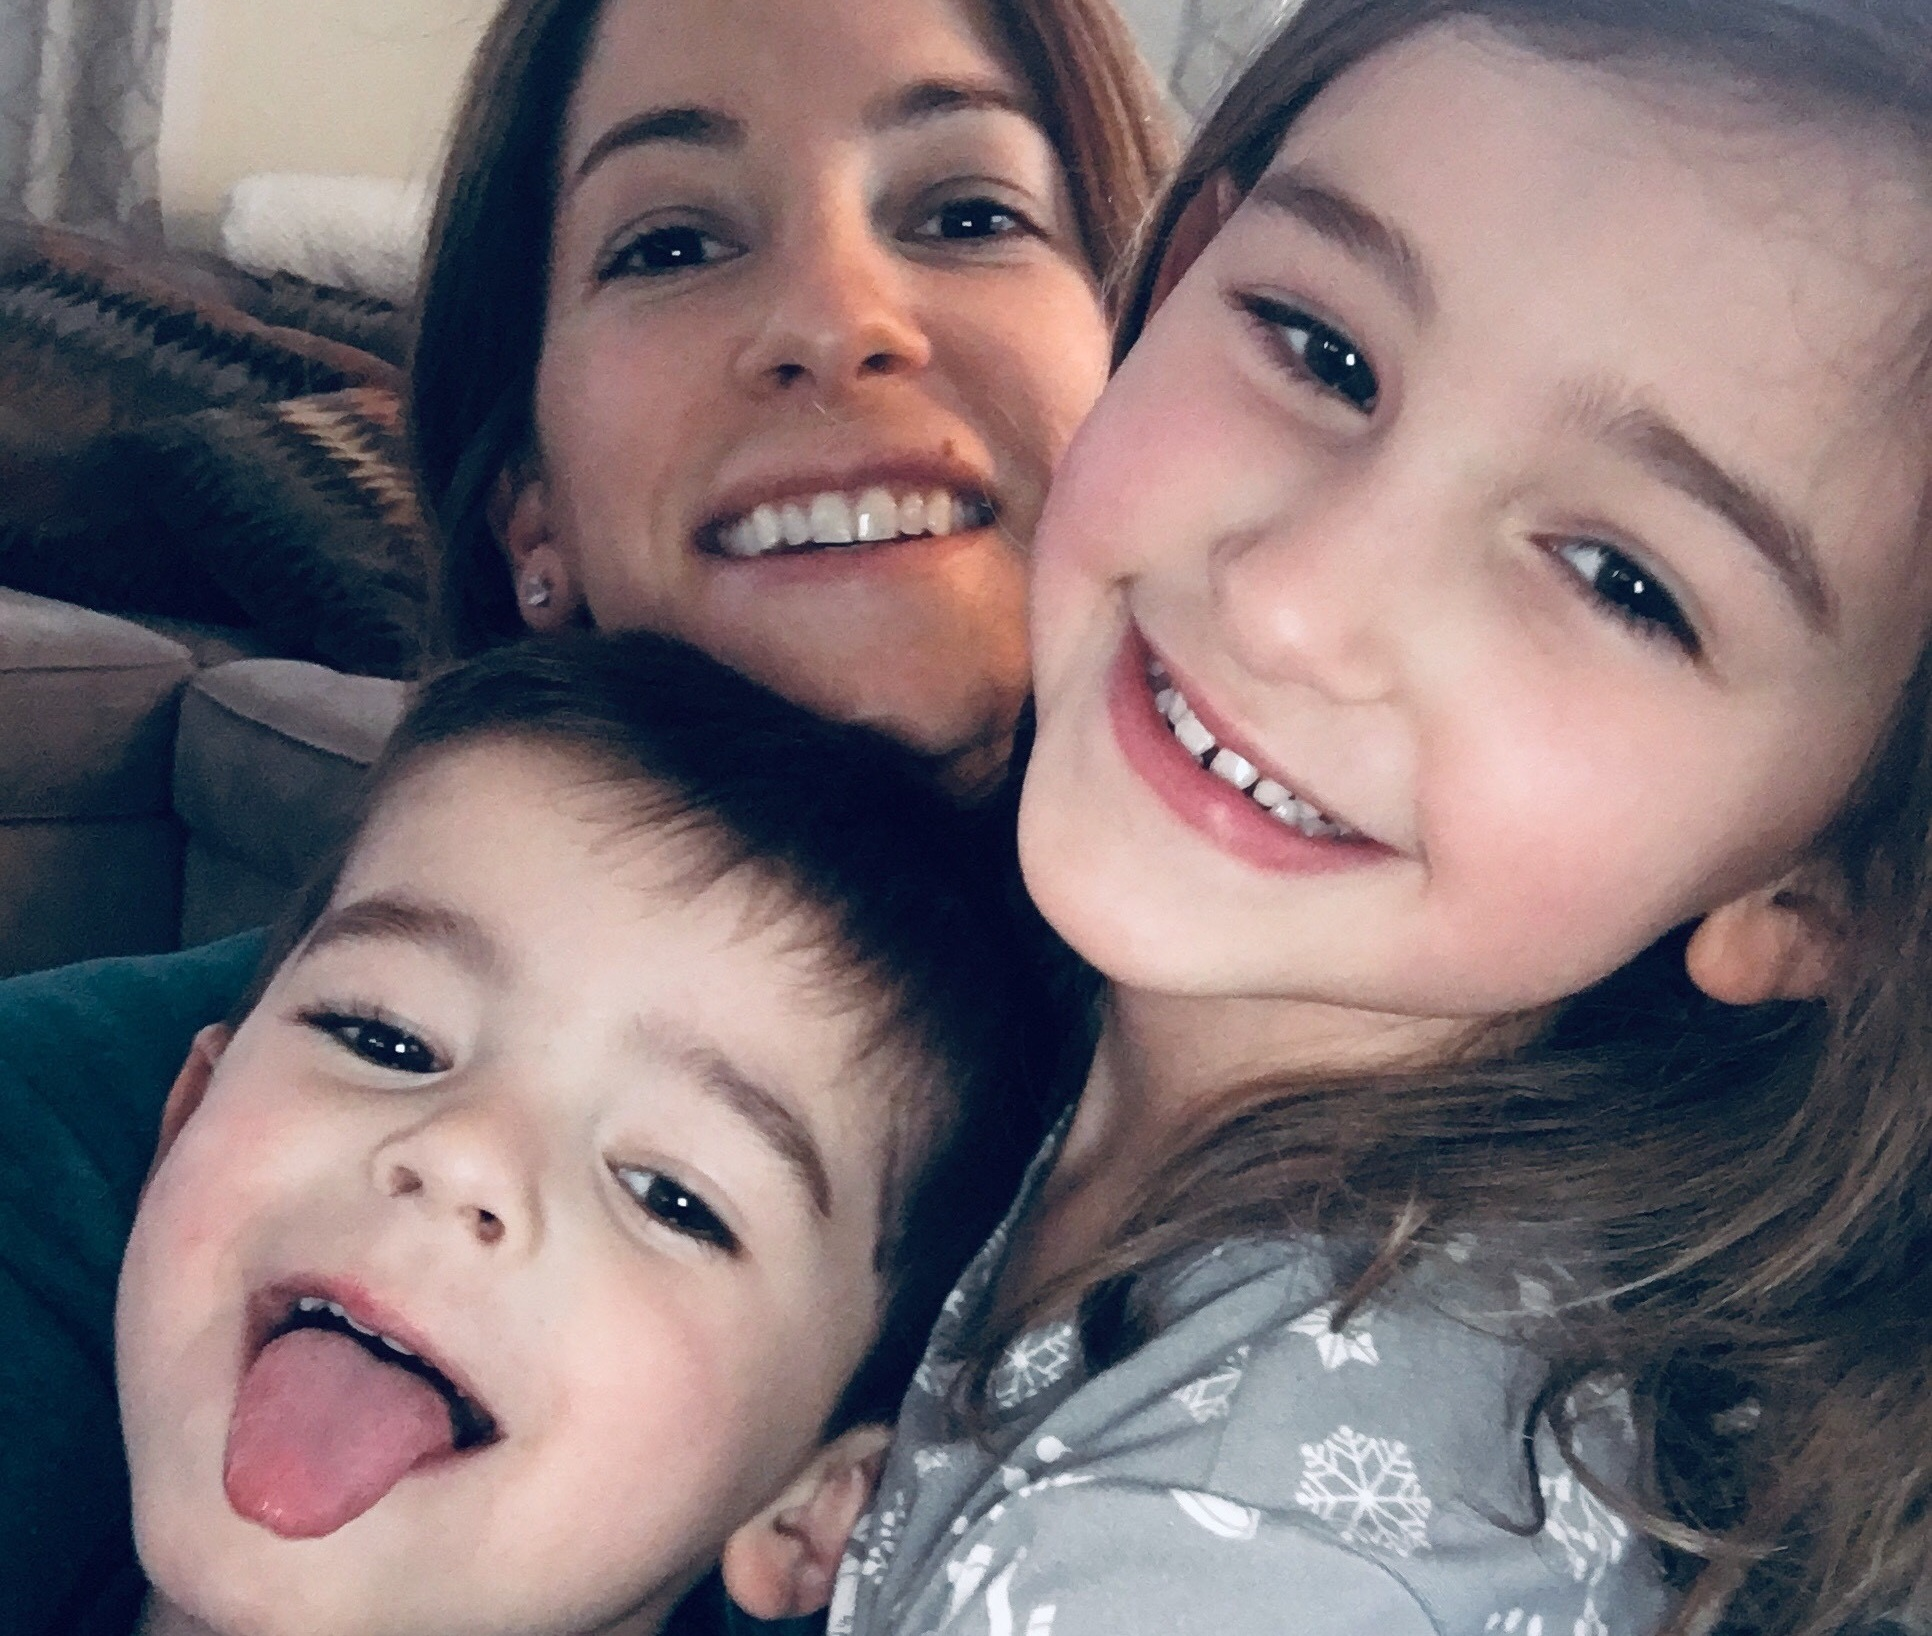 Meet Vanessa O'Neill pictured with her two children Gracie and Emmett. Vanessa took a few minutes during her hectic day (after getting the kids down for a nap) to answer a few questions about her Small Group experience. She hopes her answer are helpful and encouraging to others!